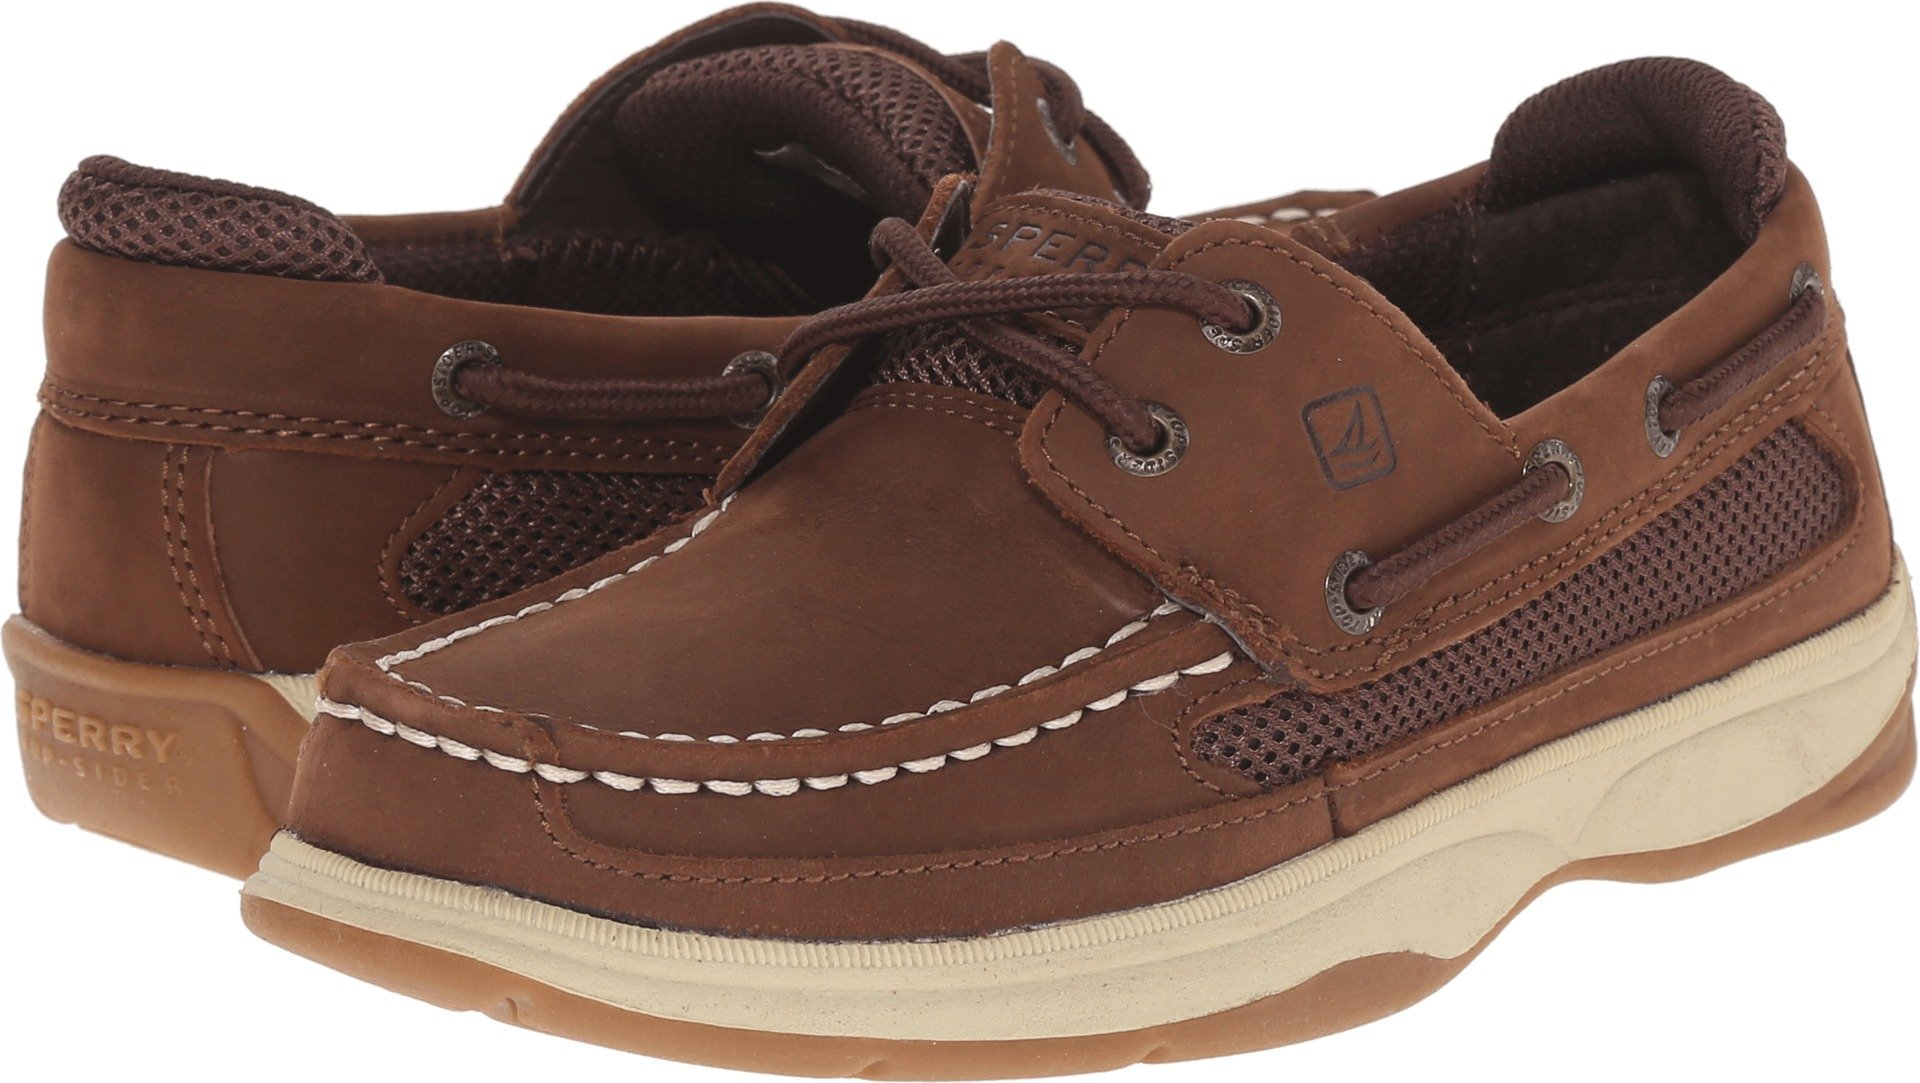 Sperry Boy's Kids, Lanyard Boat Shoes Brown 4 M